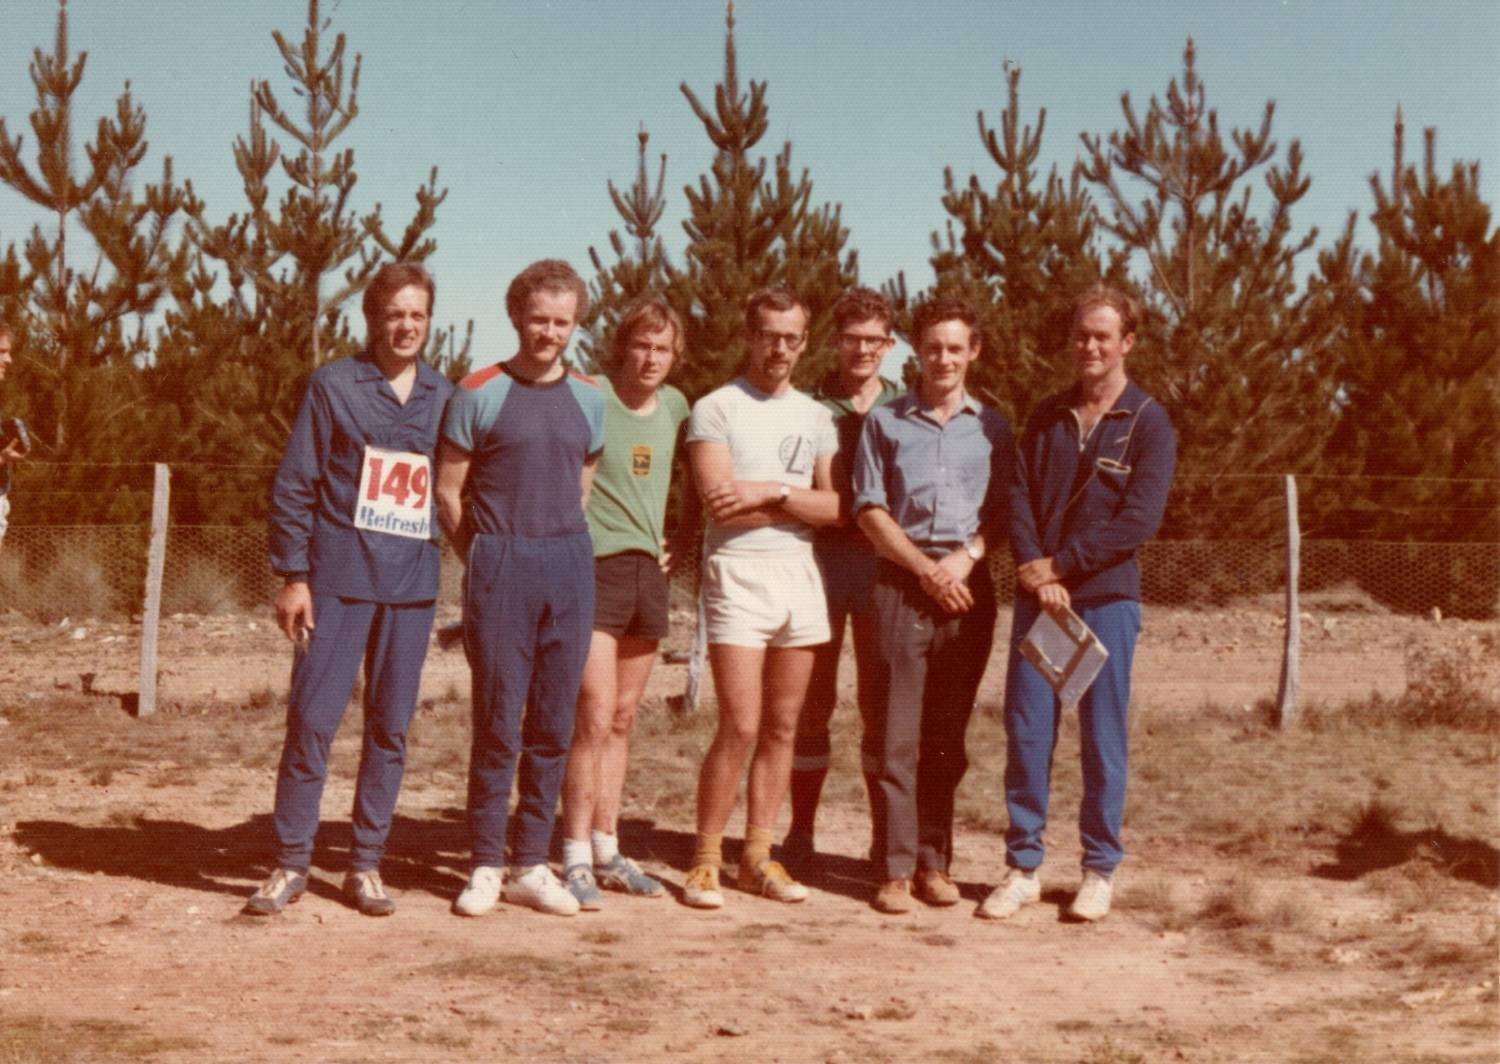 Significant Events in ACT Orienteering History No. 1: The 1970s